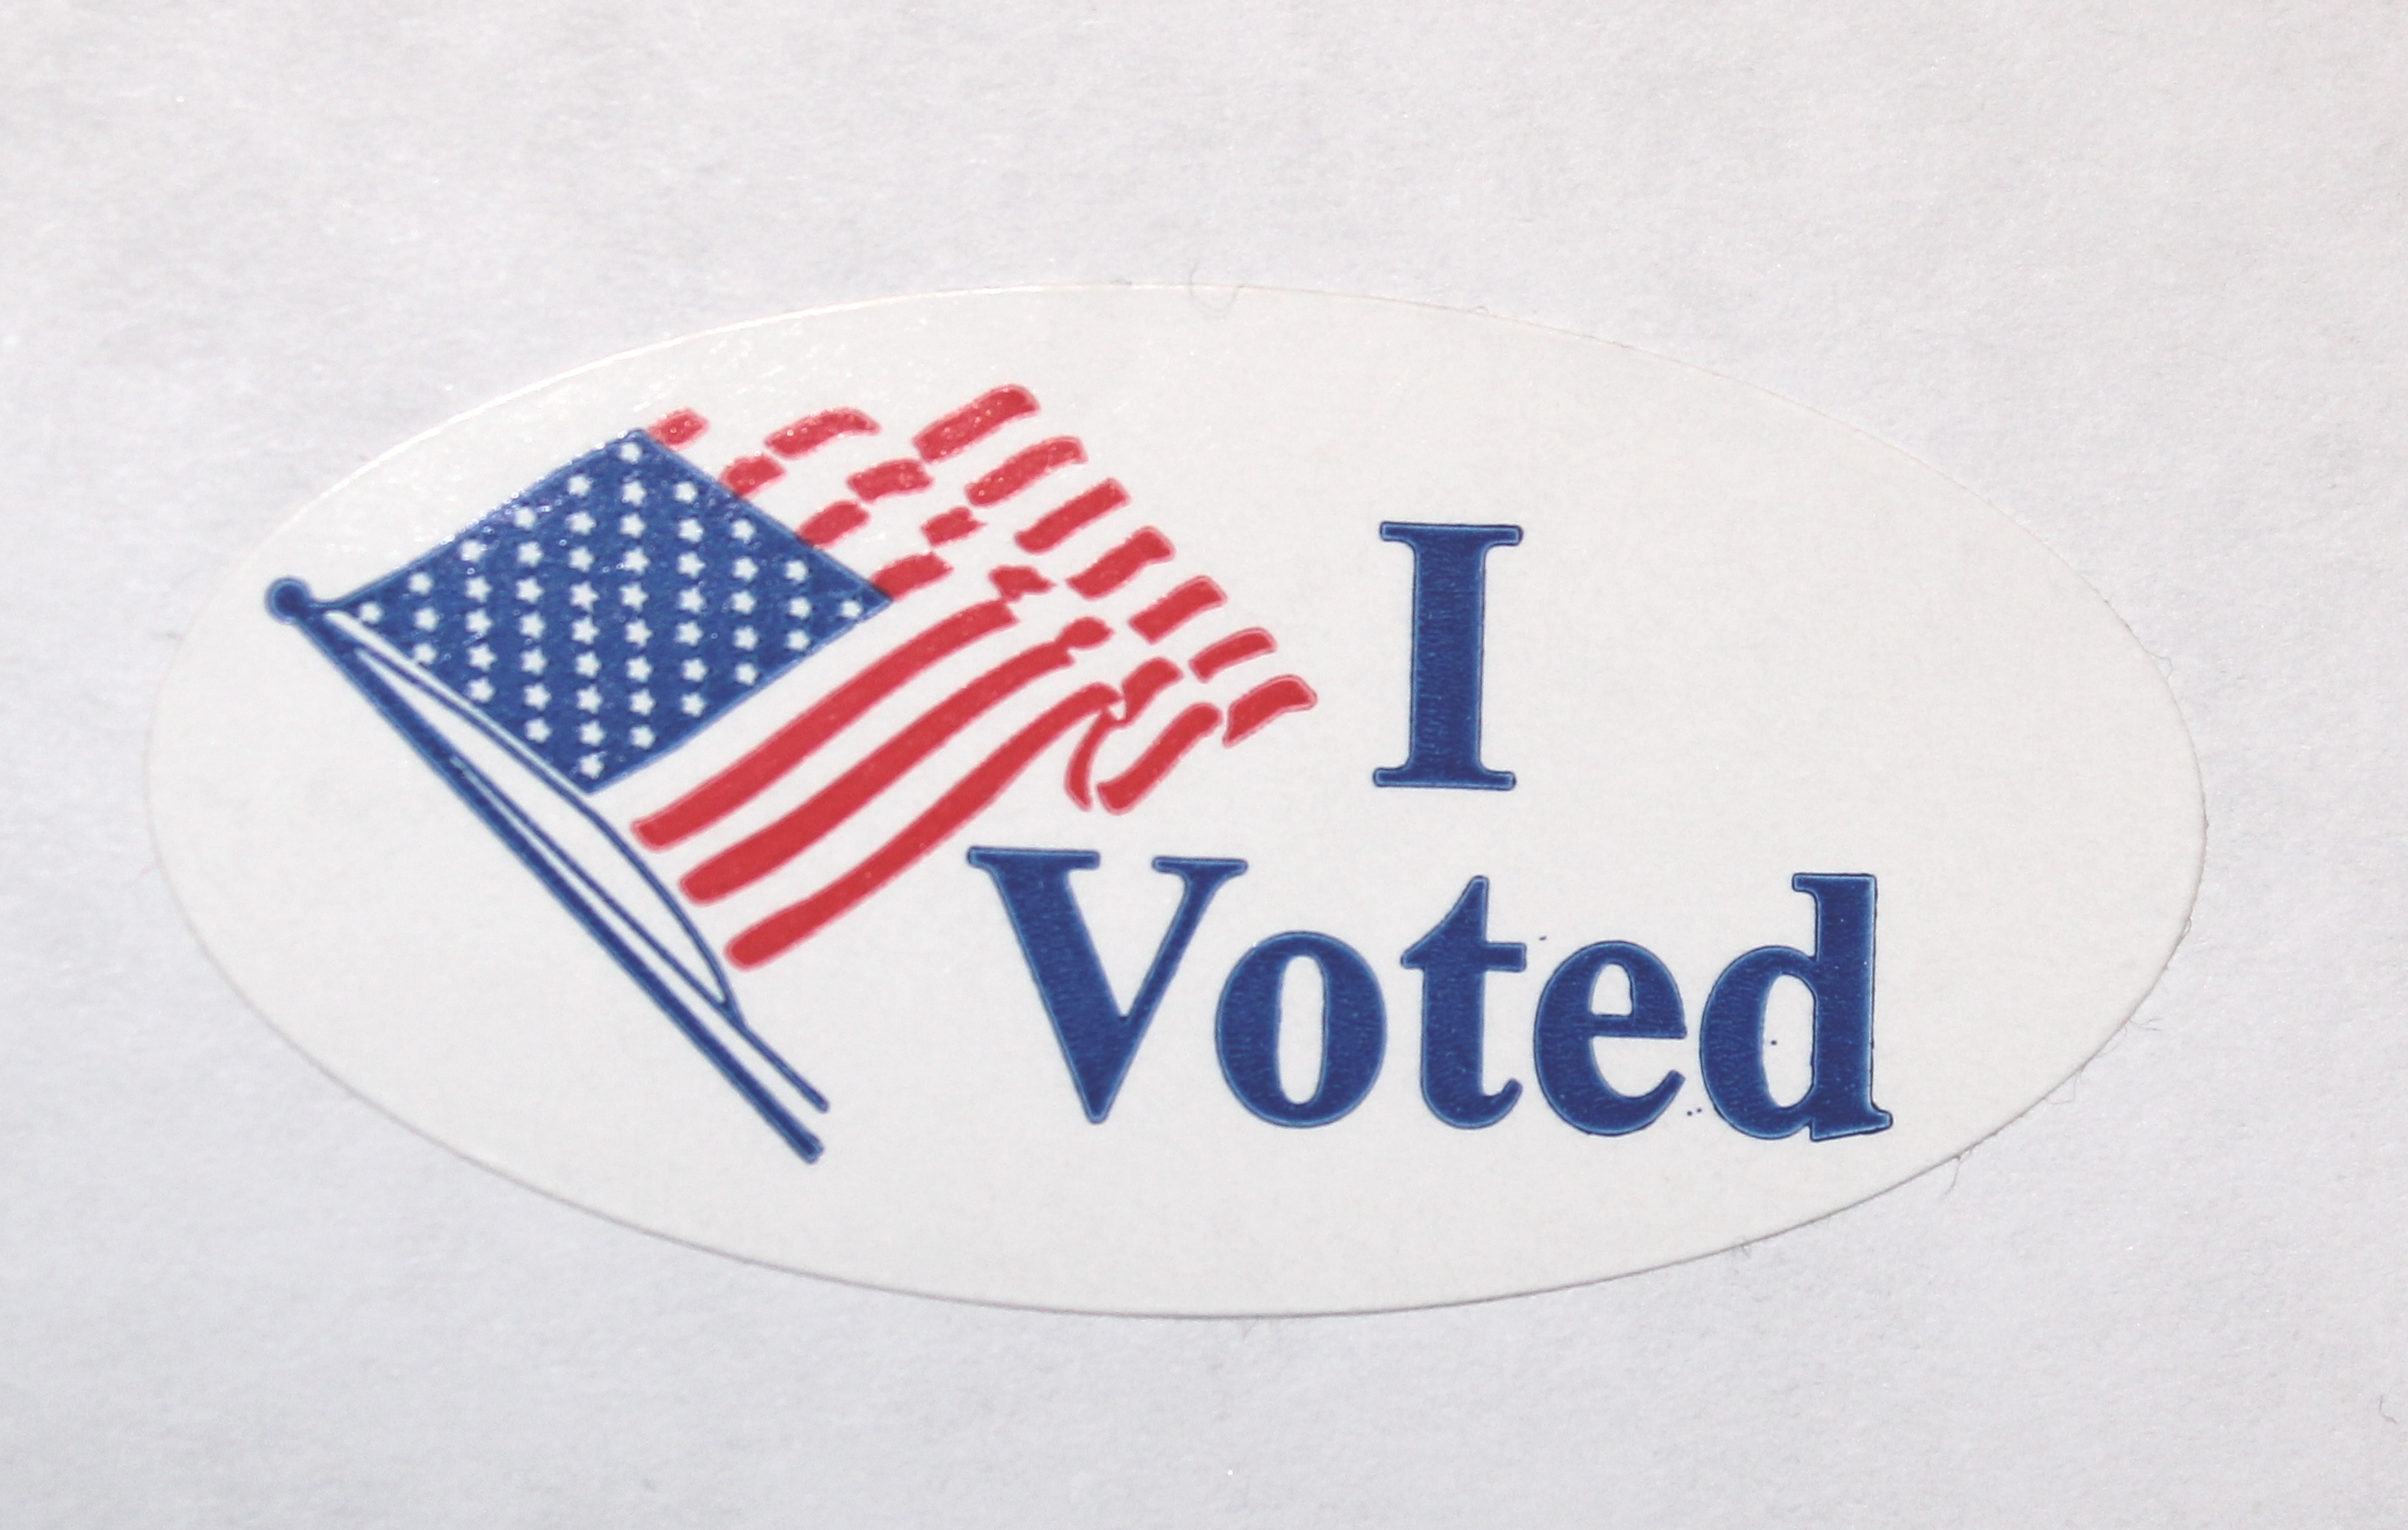 I_Voted_Sticker